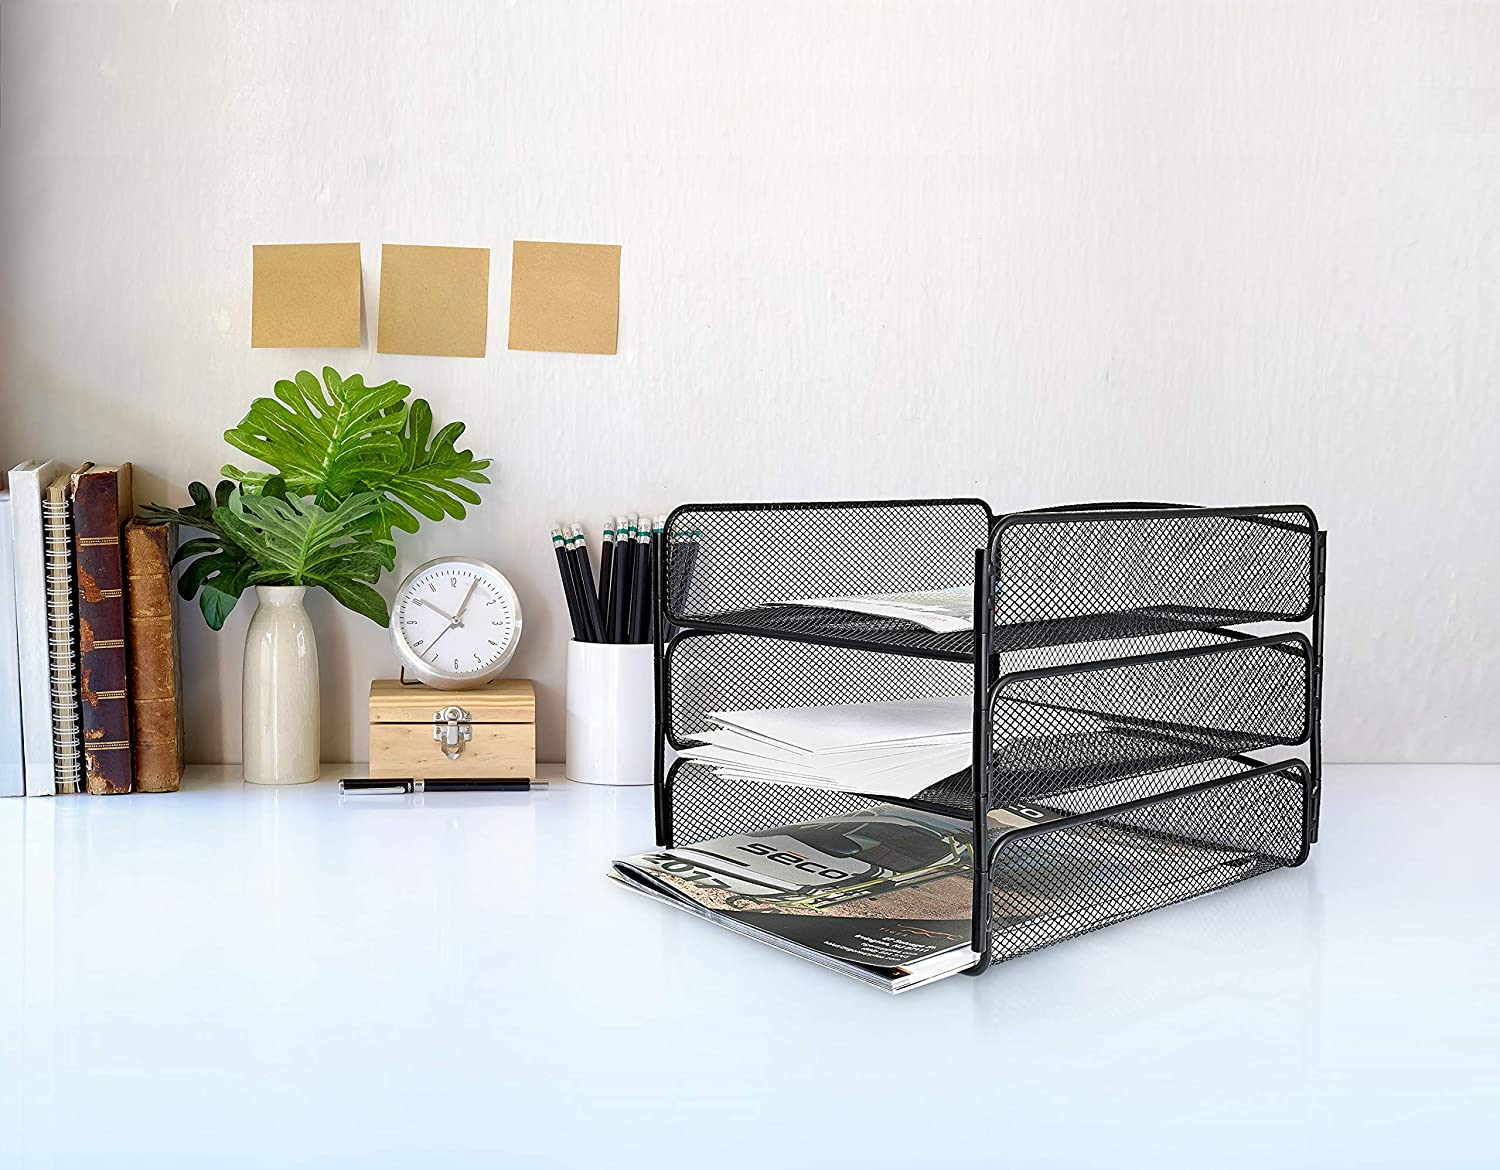 AdirOffice Mesh Desktop Organizer with Triple Tray Black Easy Use Compartment /& Drawer for Home /& Office Use Contemporary Tabletop Shelf Rack